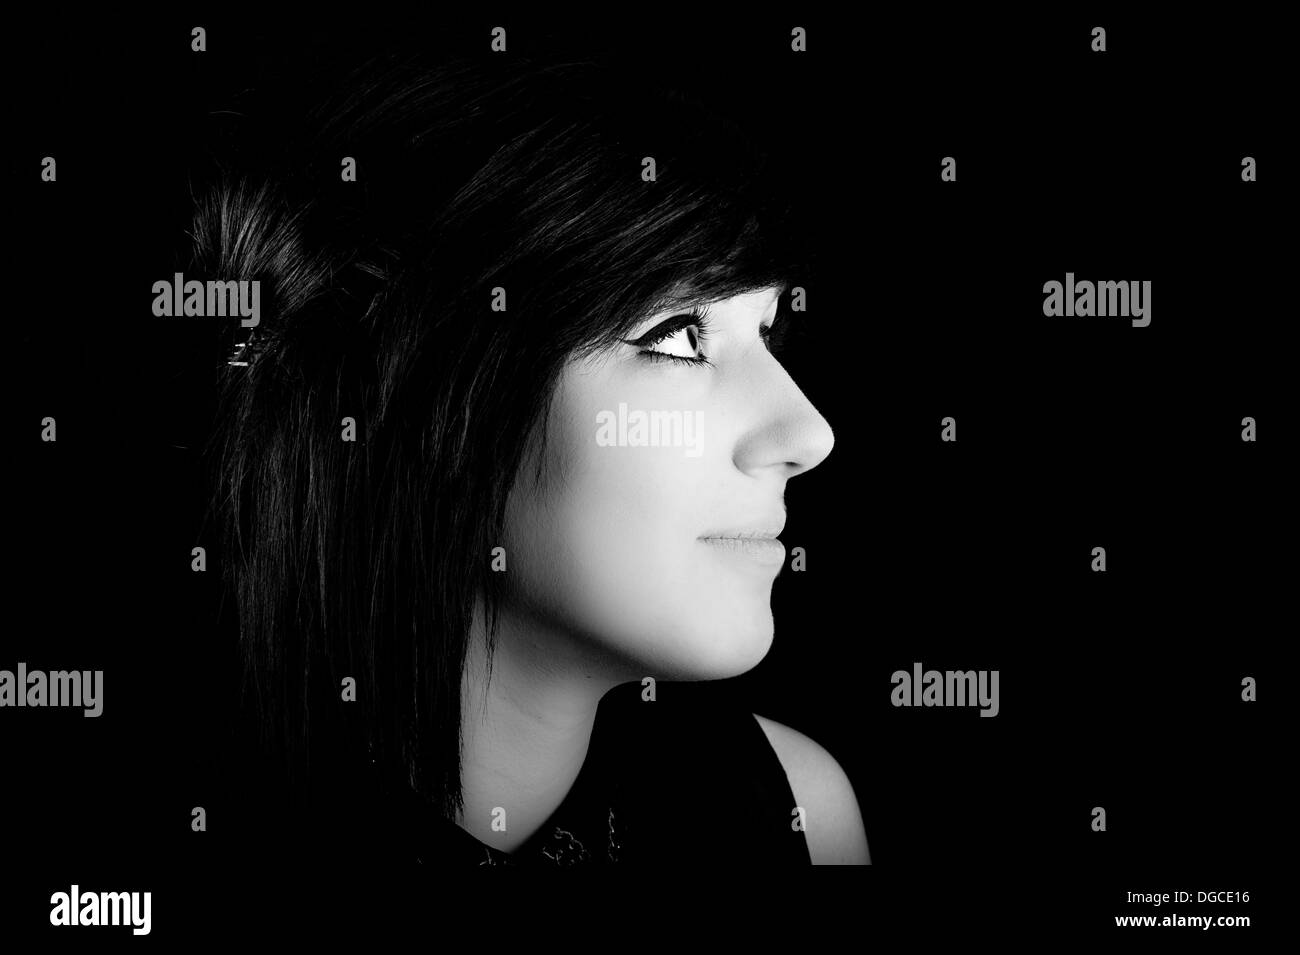 goth girl with cleopatra eyes smiling black and white - Stock Image